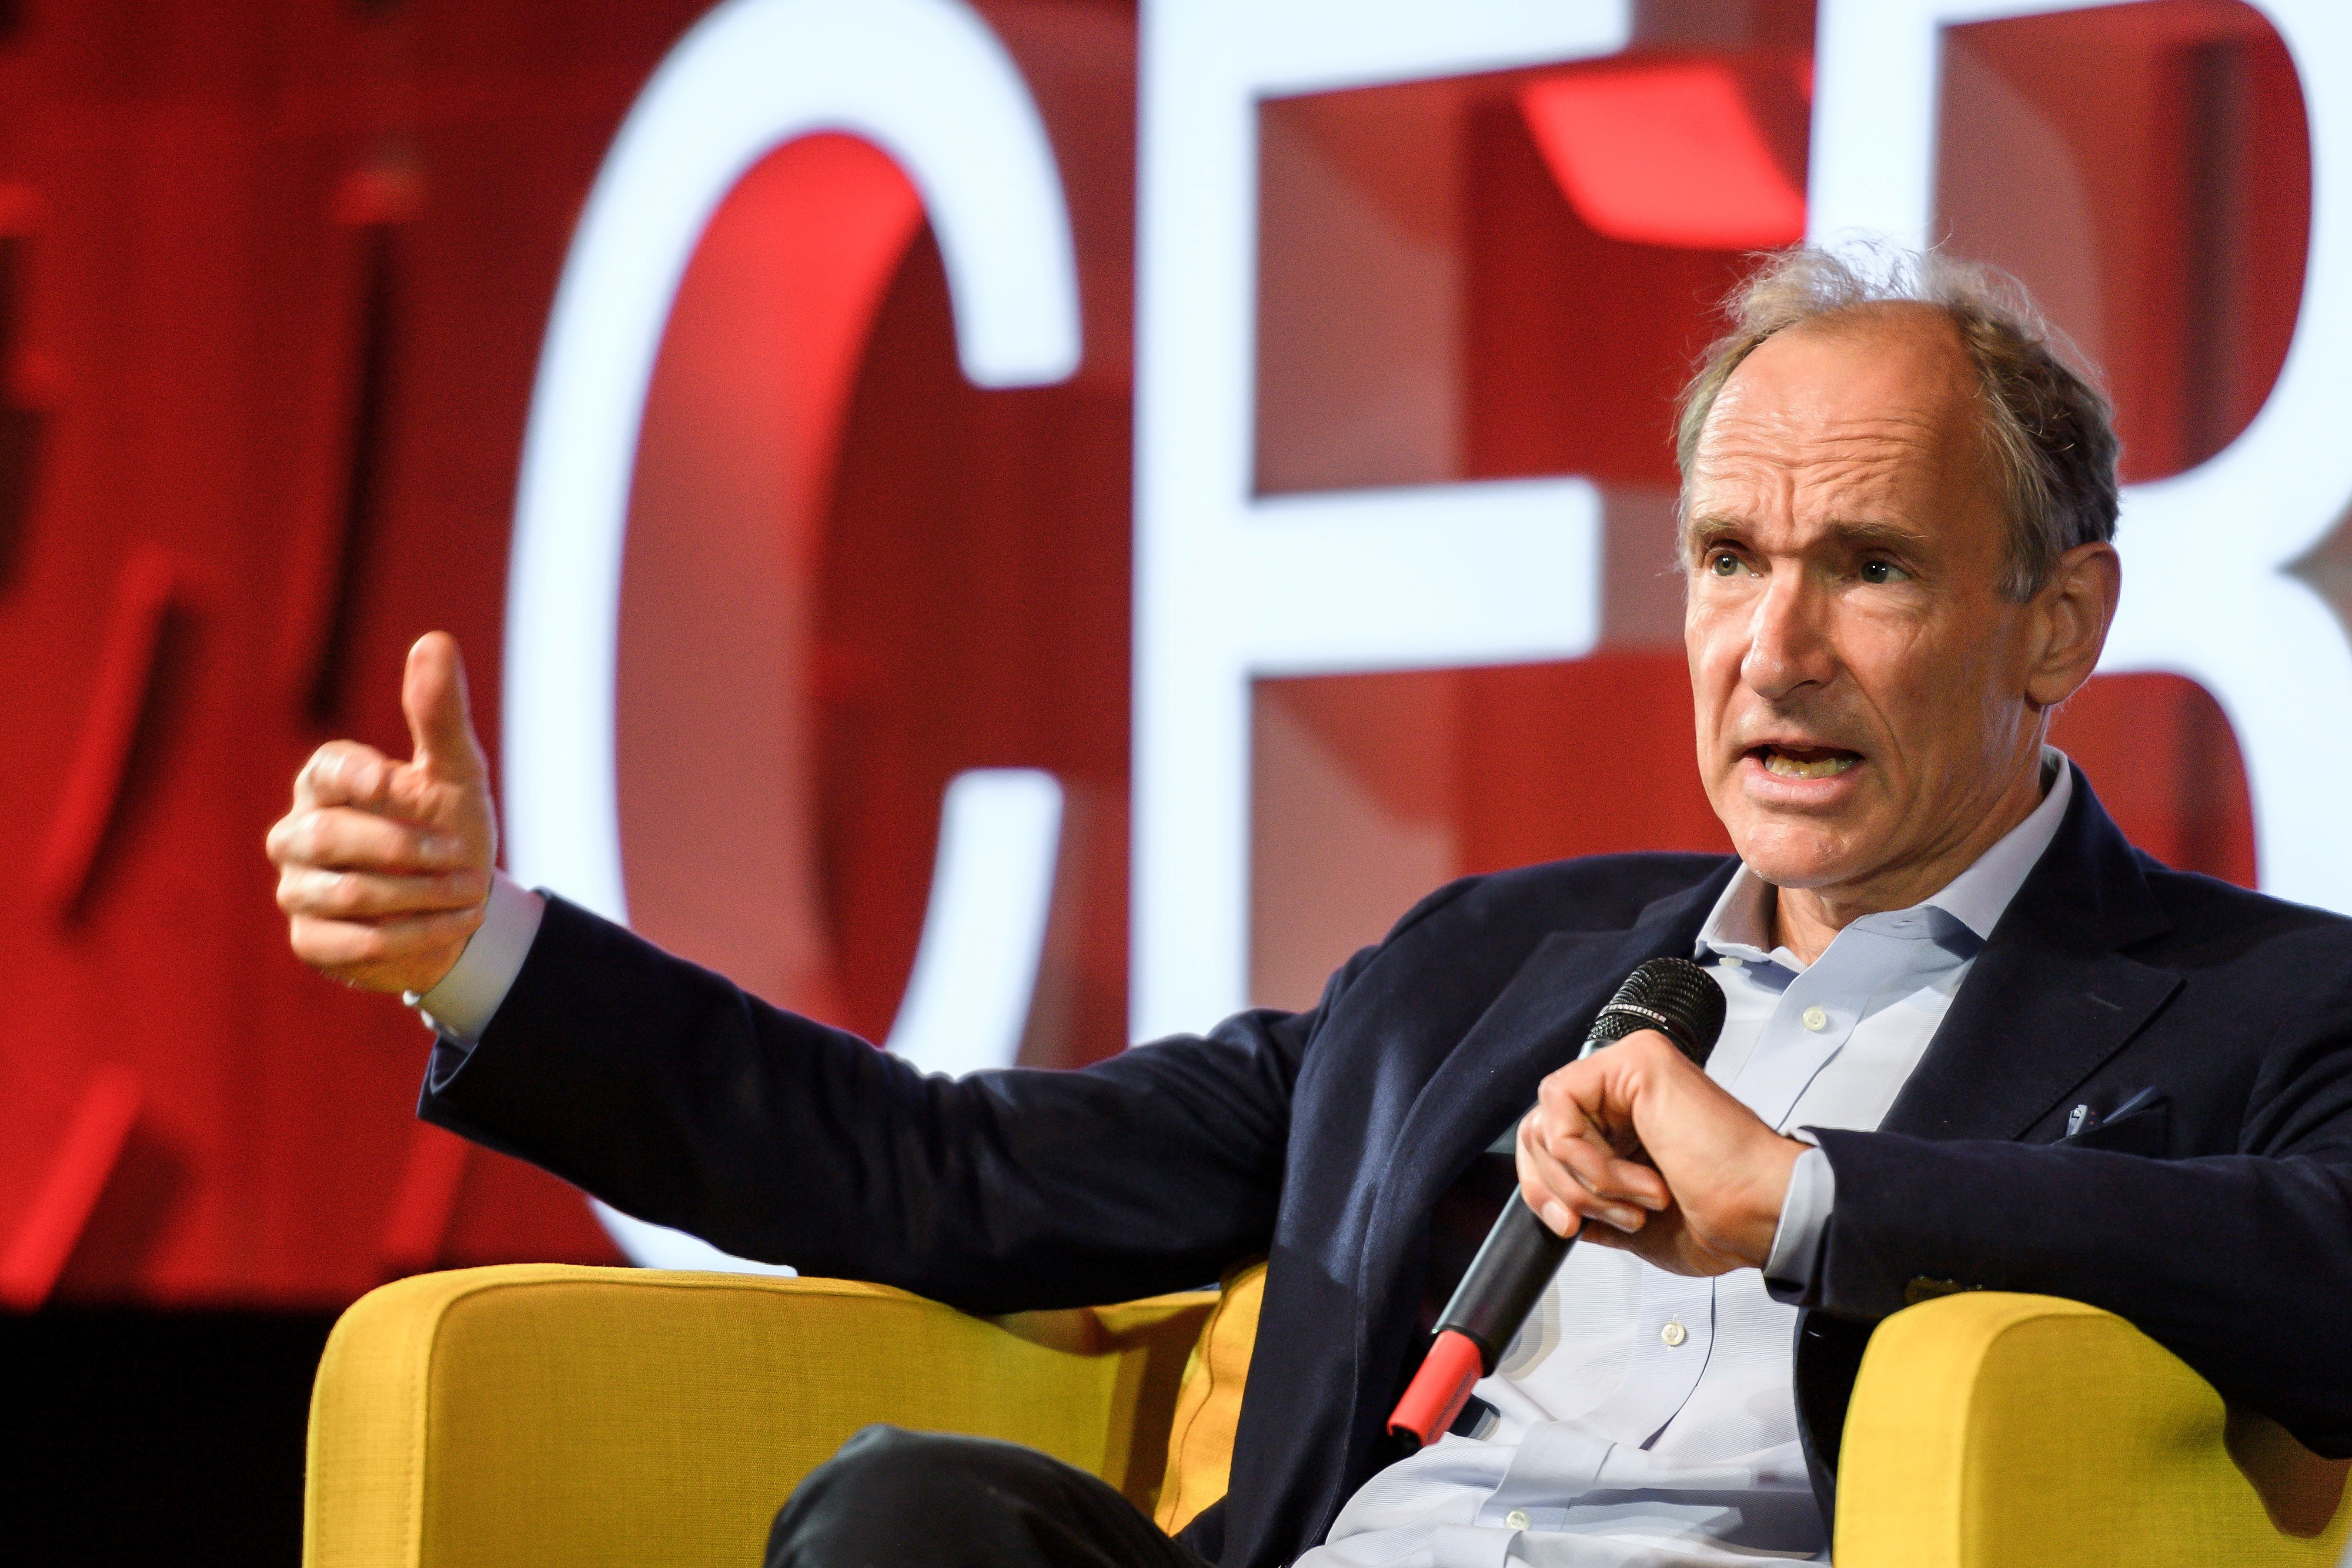 World Wide Web inventor Tim Berners-Lee delivers a speech during an event marking 30 years of World Wide Web, on March 12, 2019 at the CERN in Meyrin near Geneva, Switzerland. Fabrice Coffrini/Pool via REUTERS - RC17D75E6930